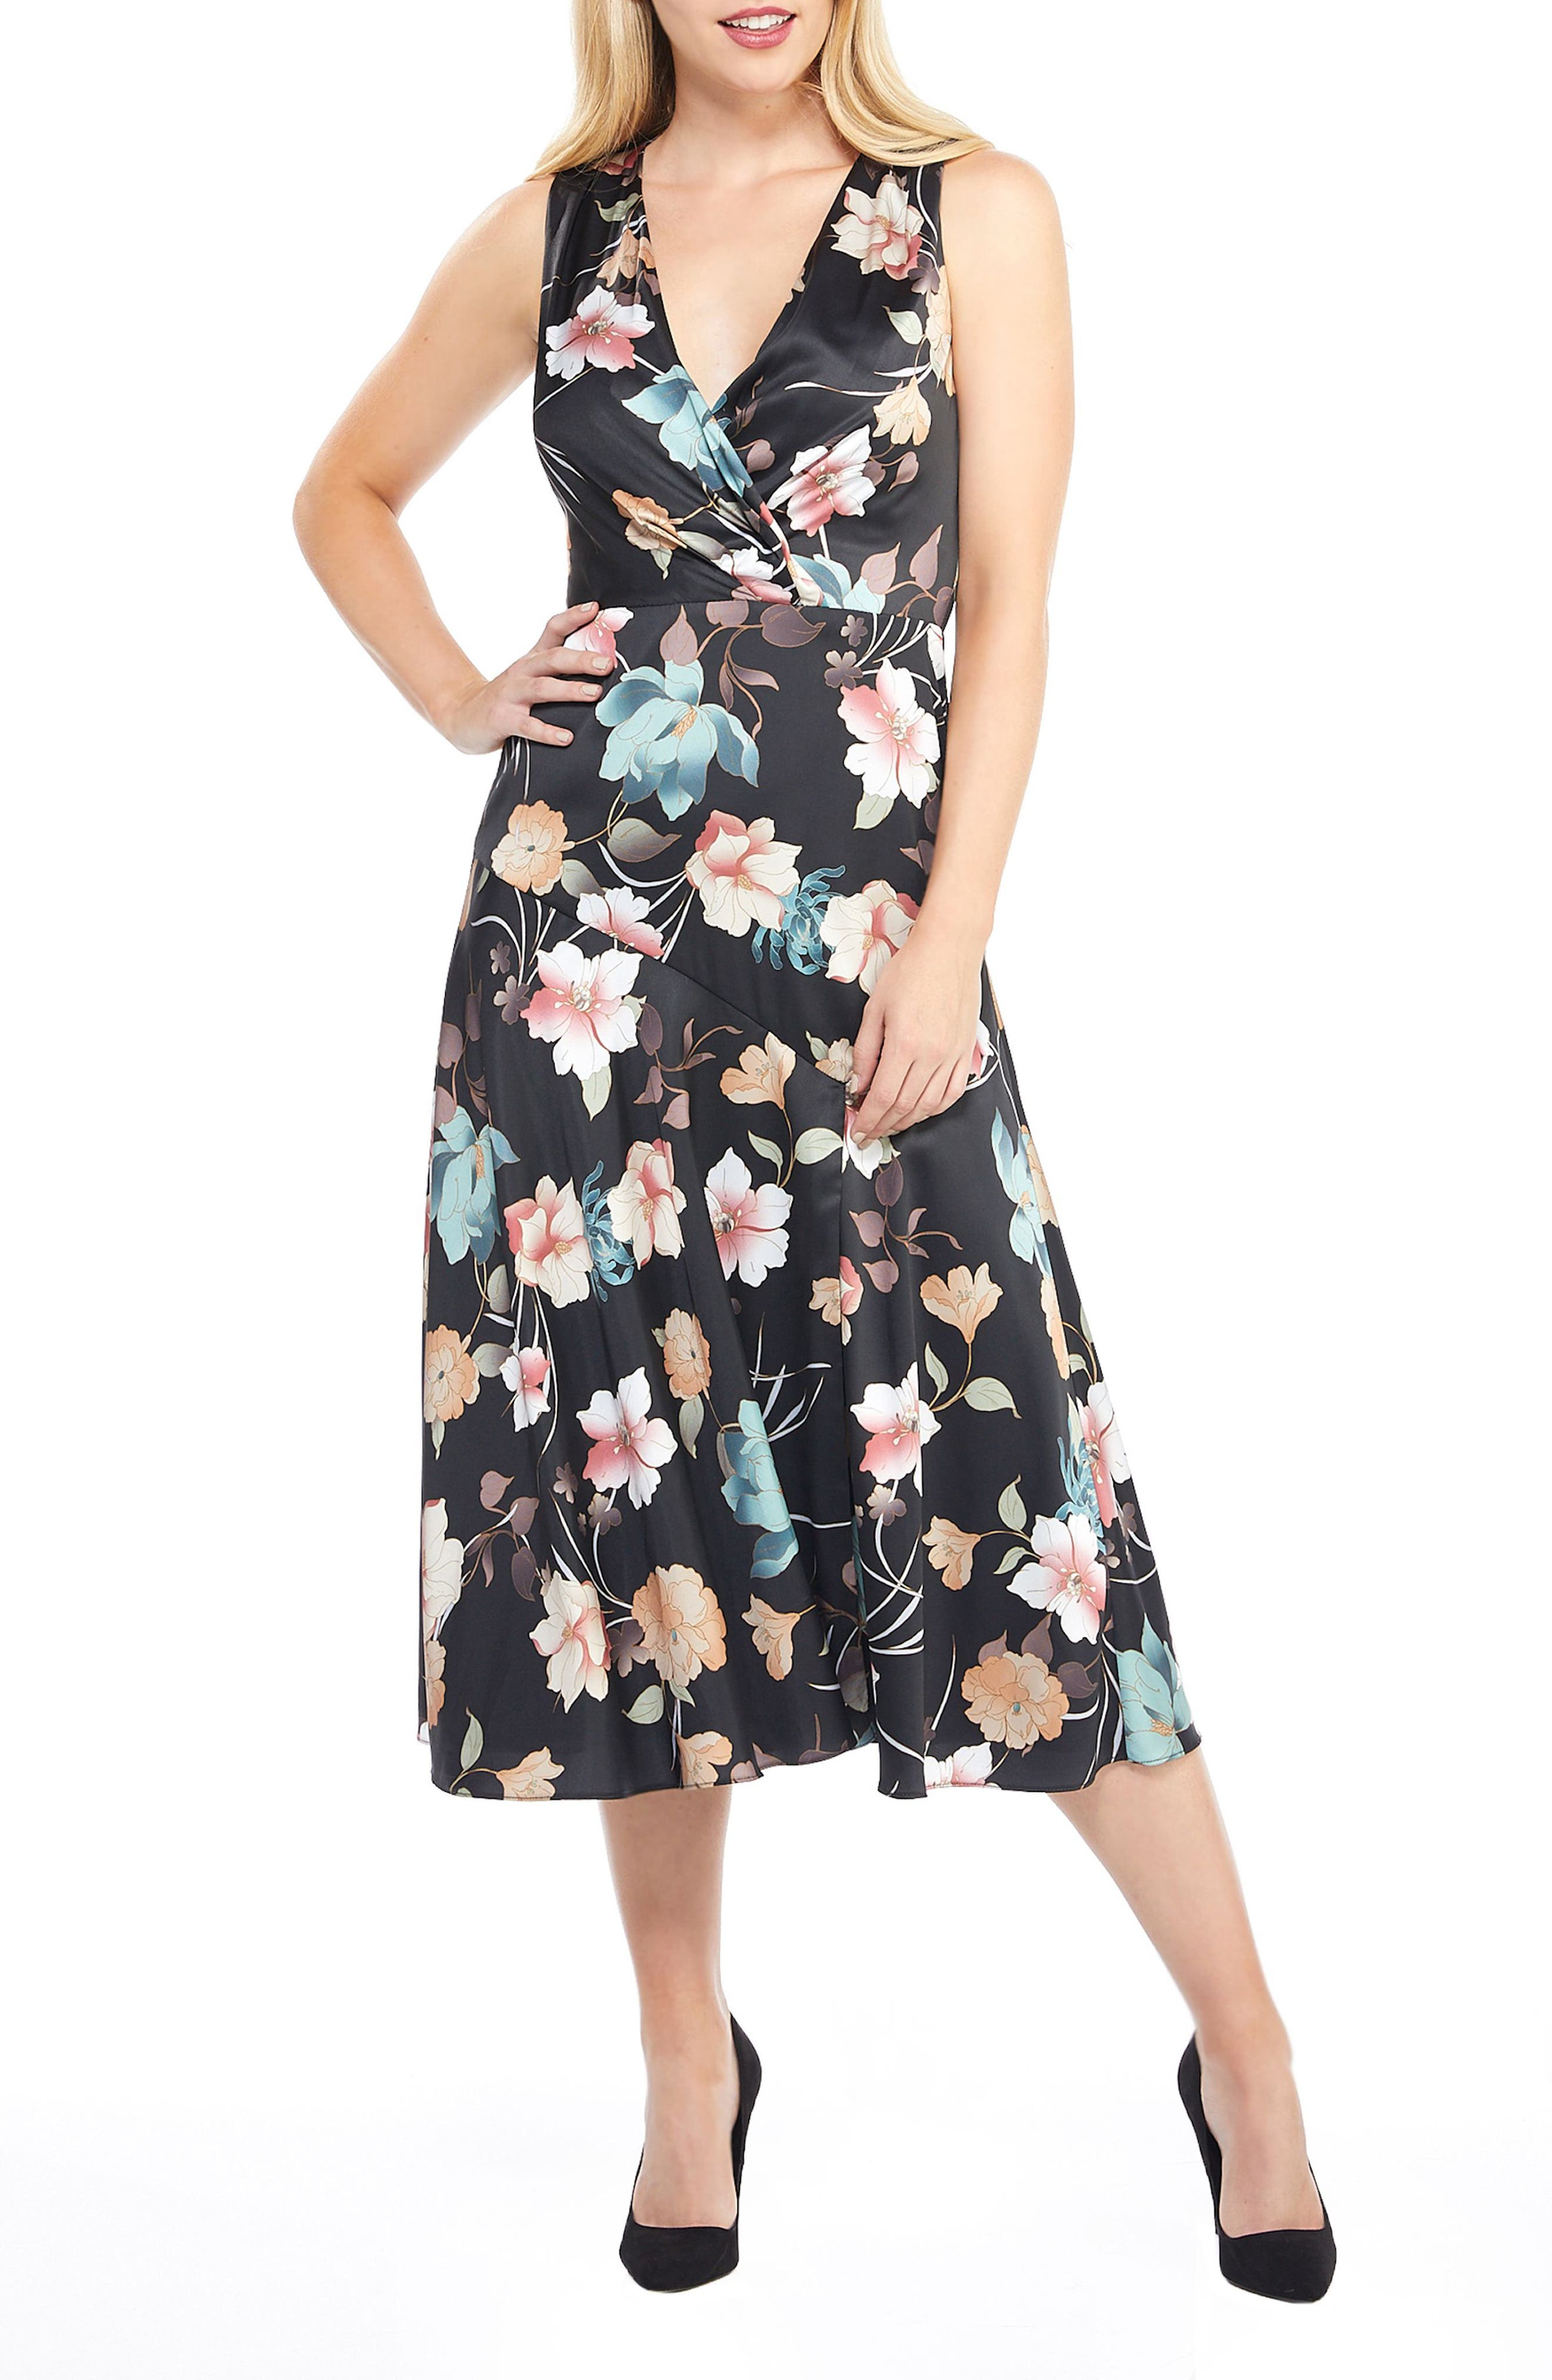 Maggy London Fiona Floral Midi Dress, Black